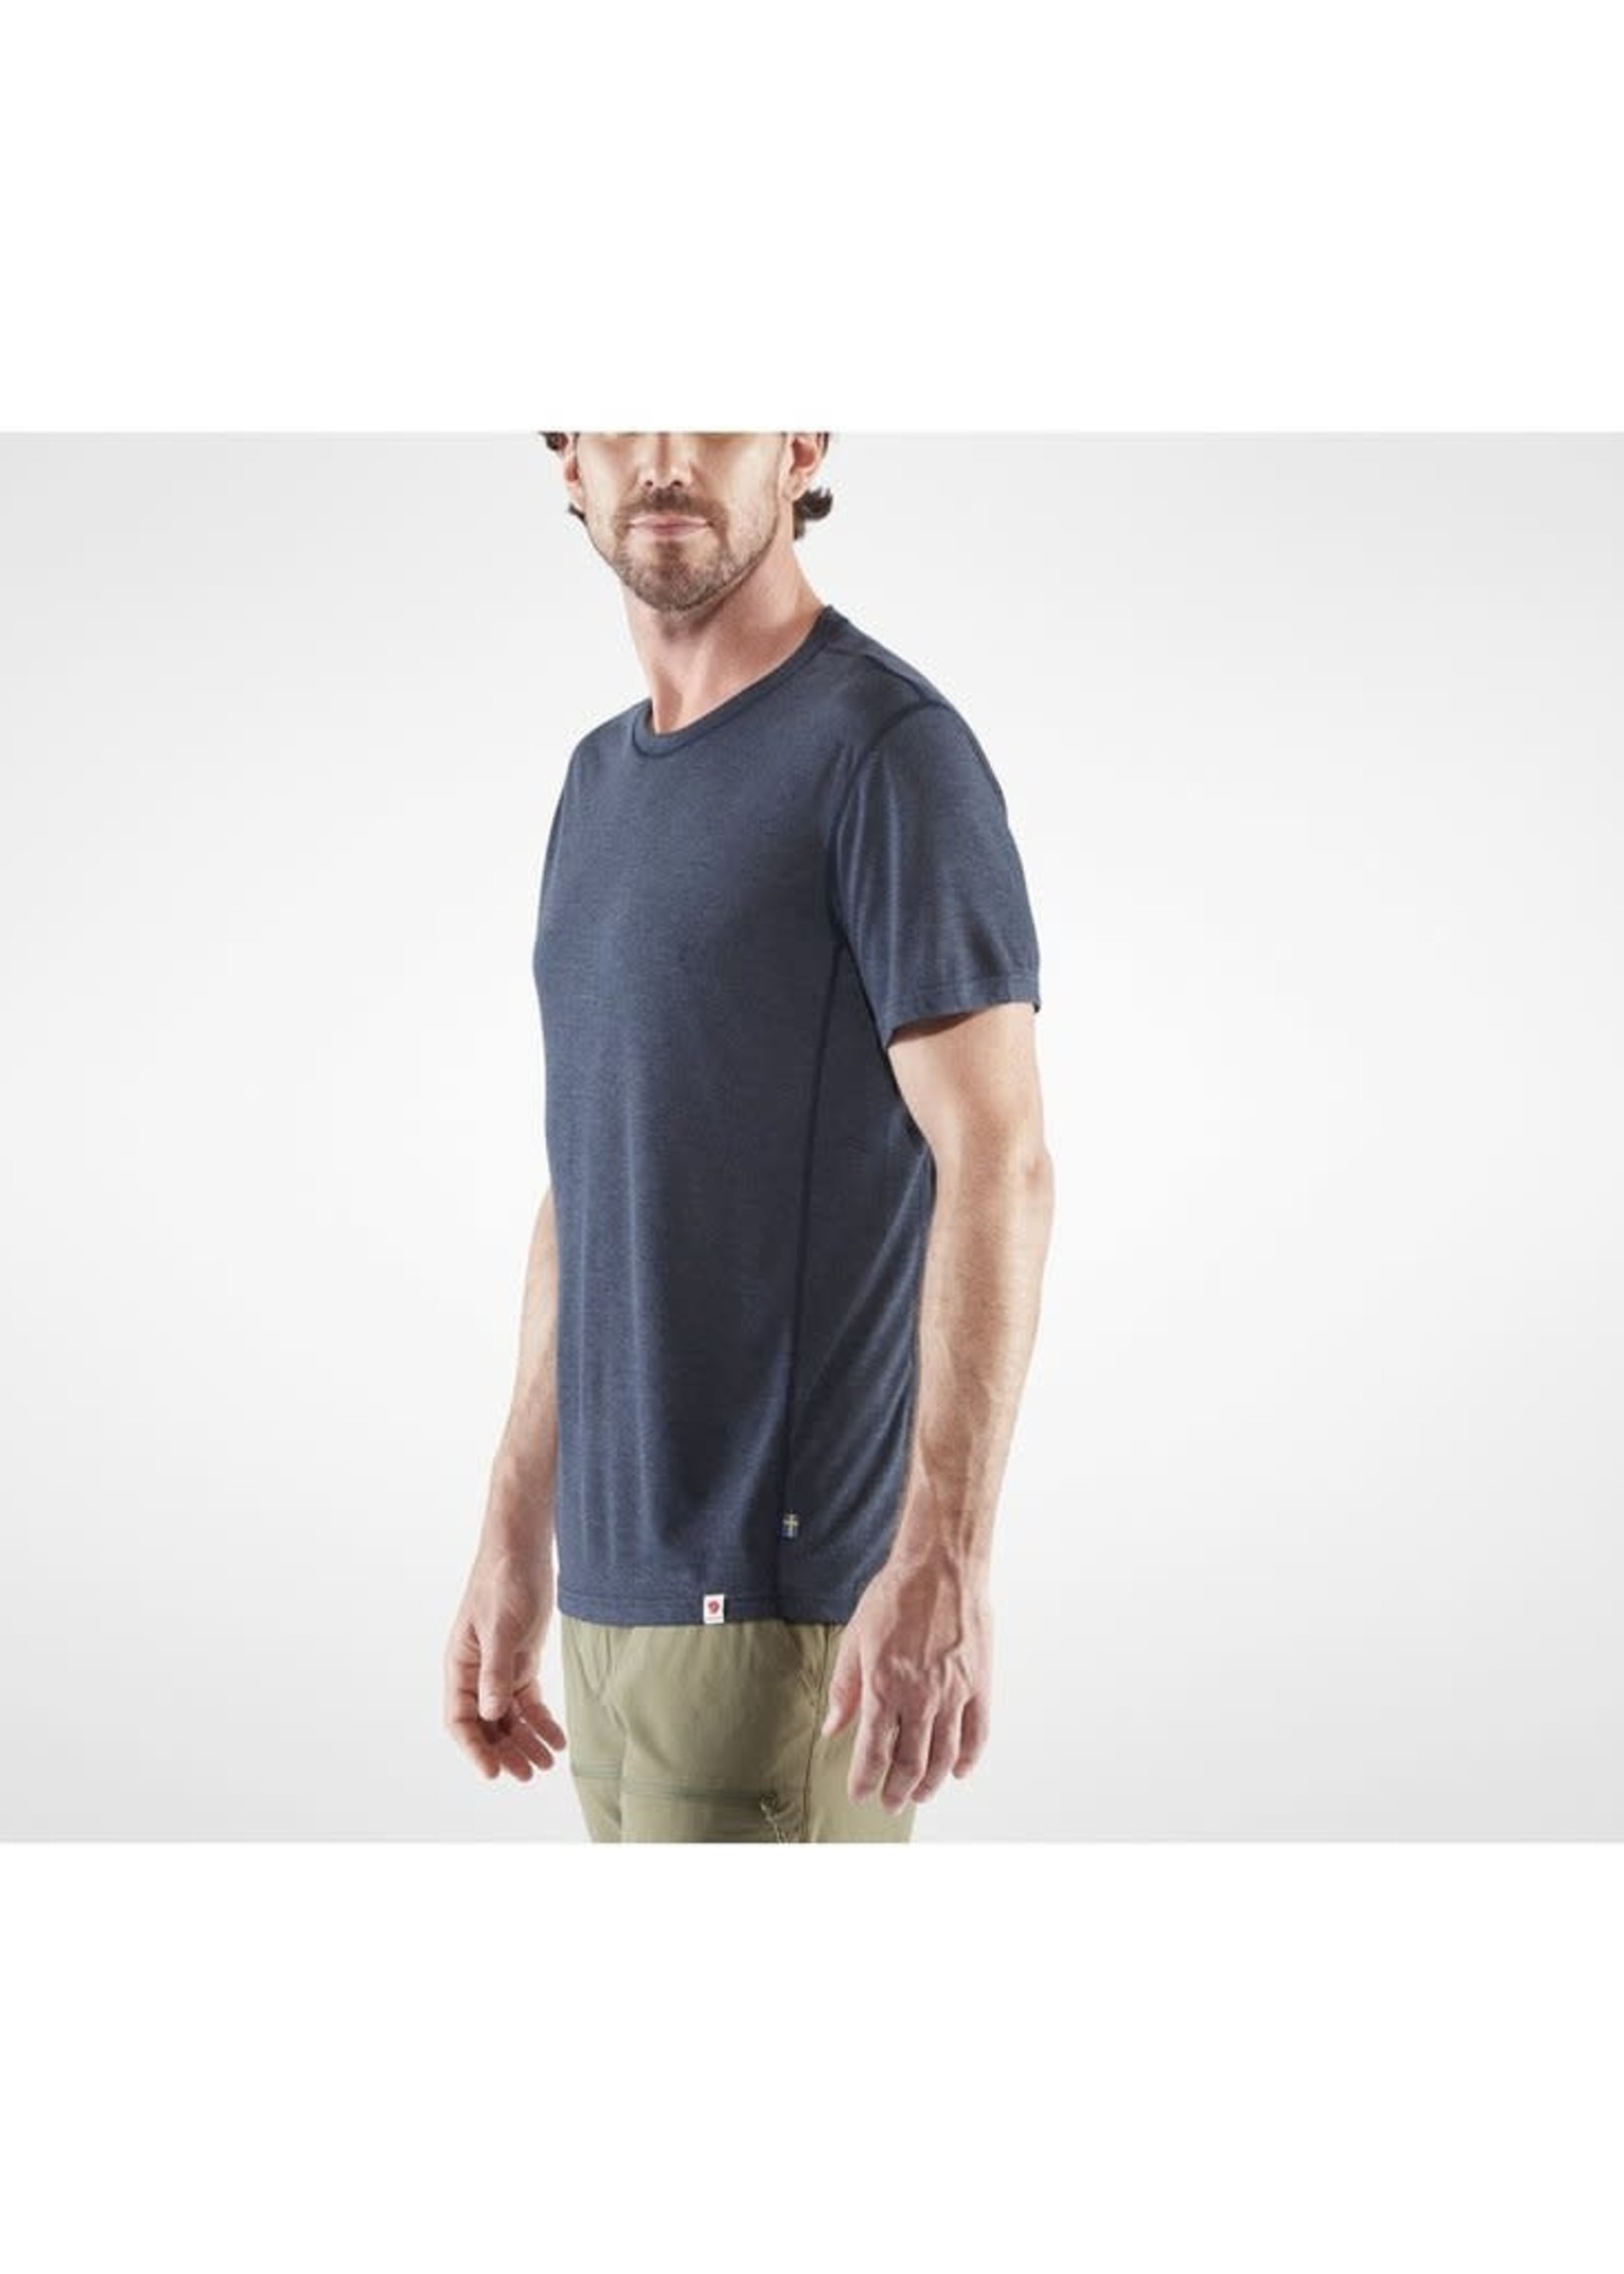 FJALL RAVEN HIGH COAST LITE Tee, RECYCLED FABRIC